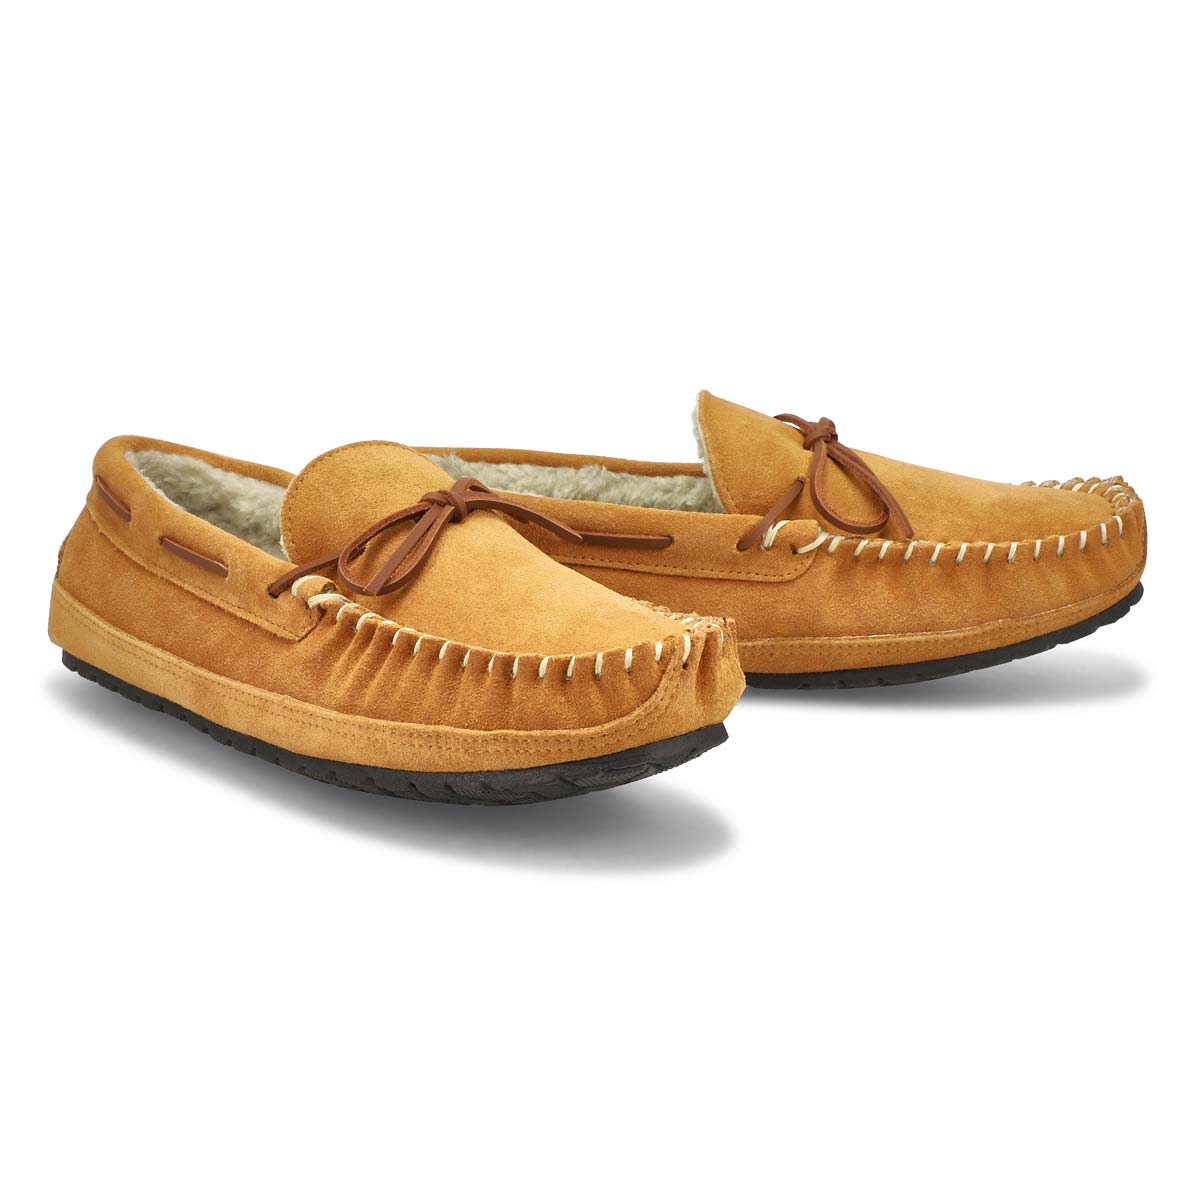 Mns Preston tan memory foam moccasin